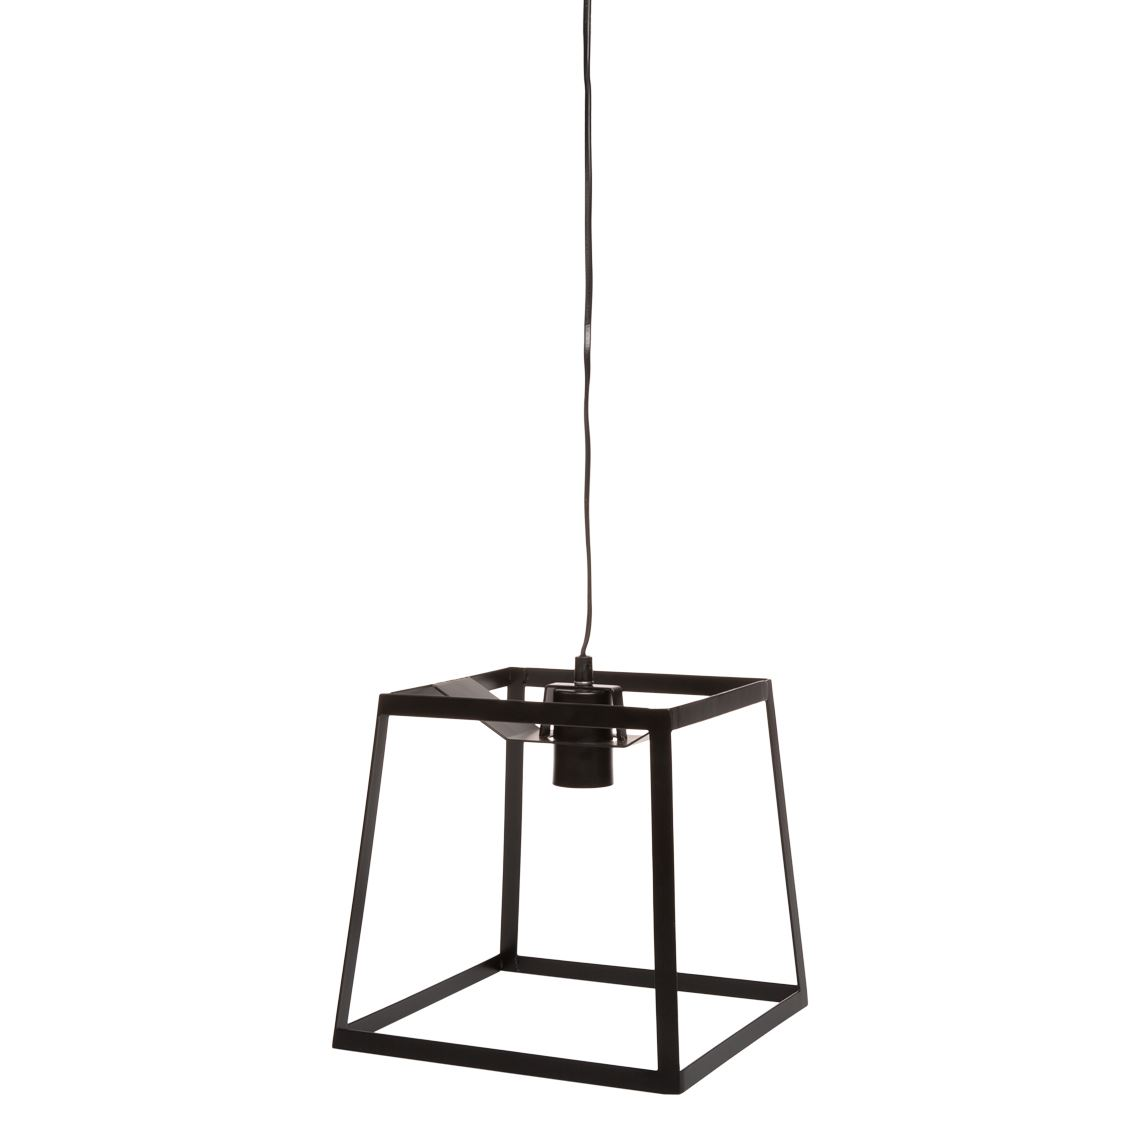 Cherokee 60W E27 Ceiling Pendant Light Size W 25cm x D 25cm x H 120cm in Black Metal Freedom by Freedom, a Pendant Lighting for sale on Style Sourcebook